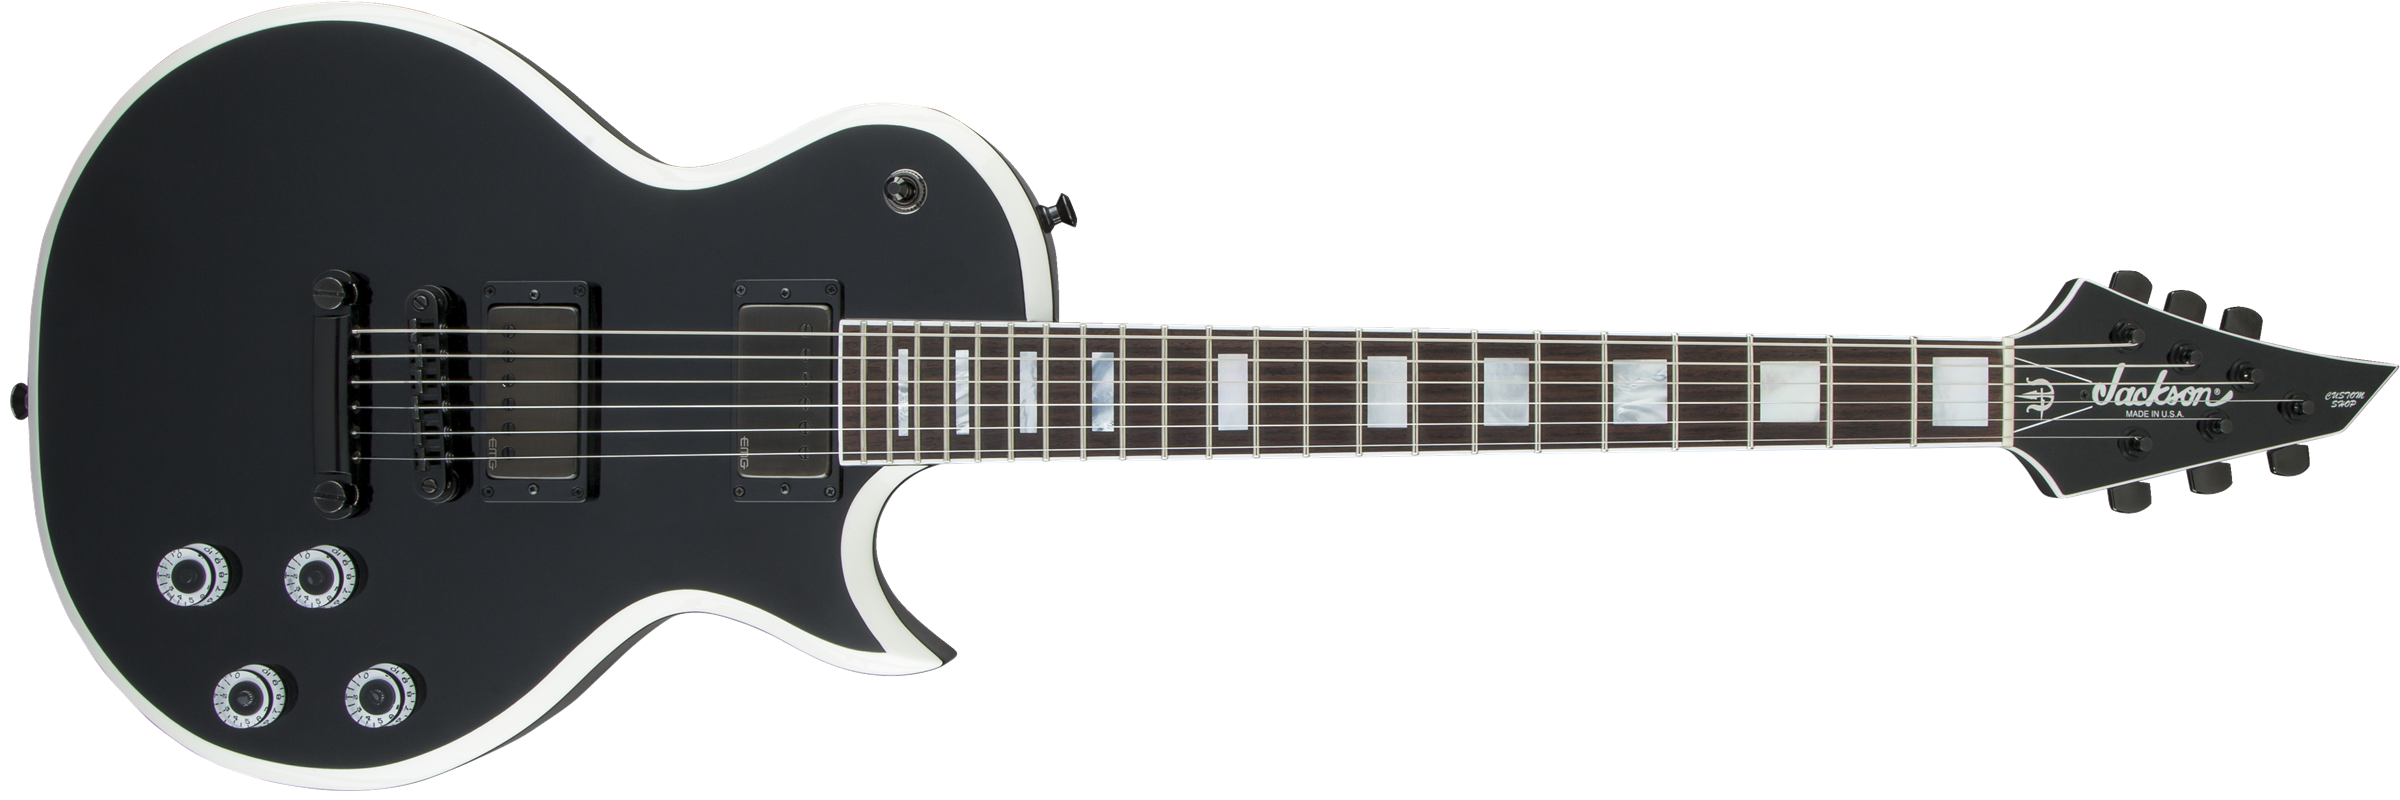 JACKSON USA Signature Marty Friedman MF-1, Rosewood Fingerboard, Gloss Black with White Bevels